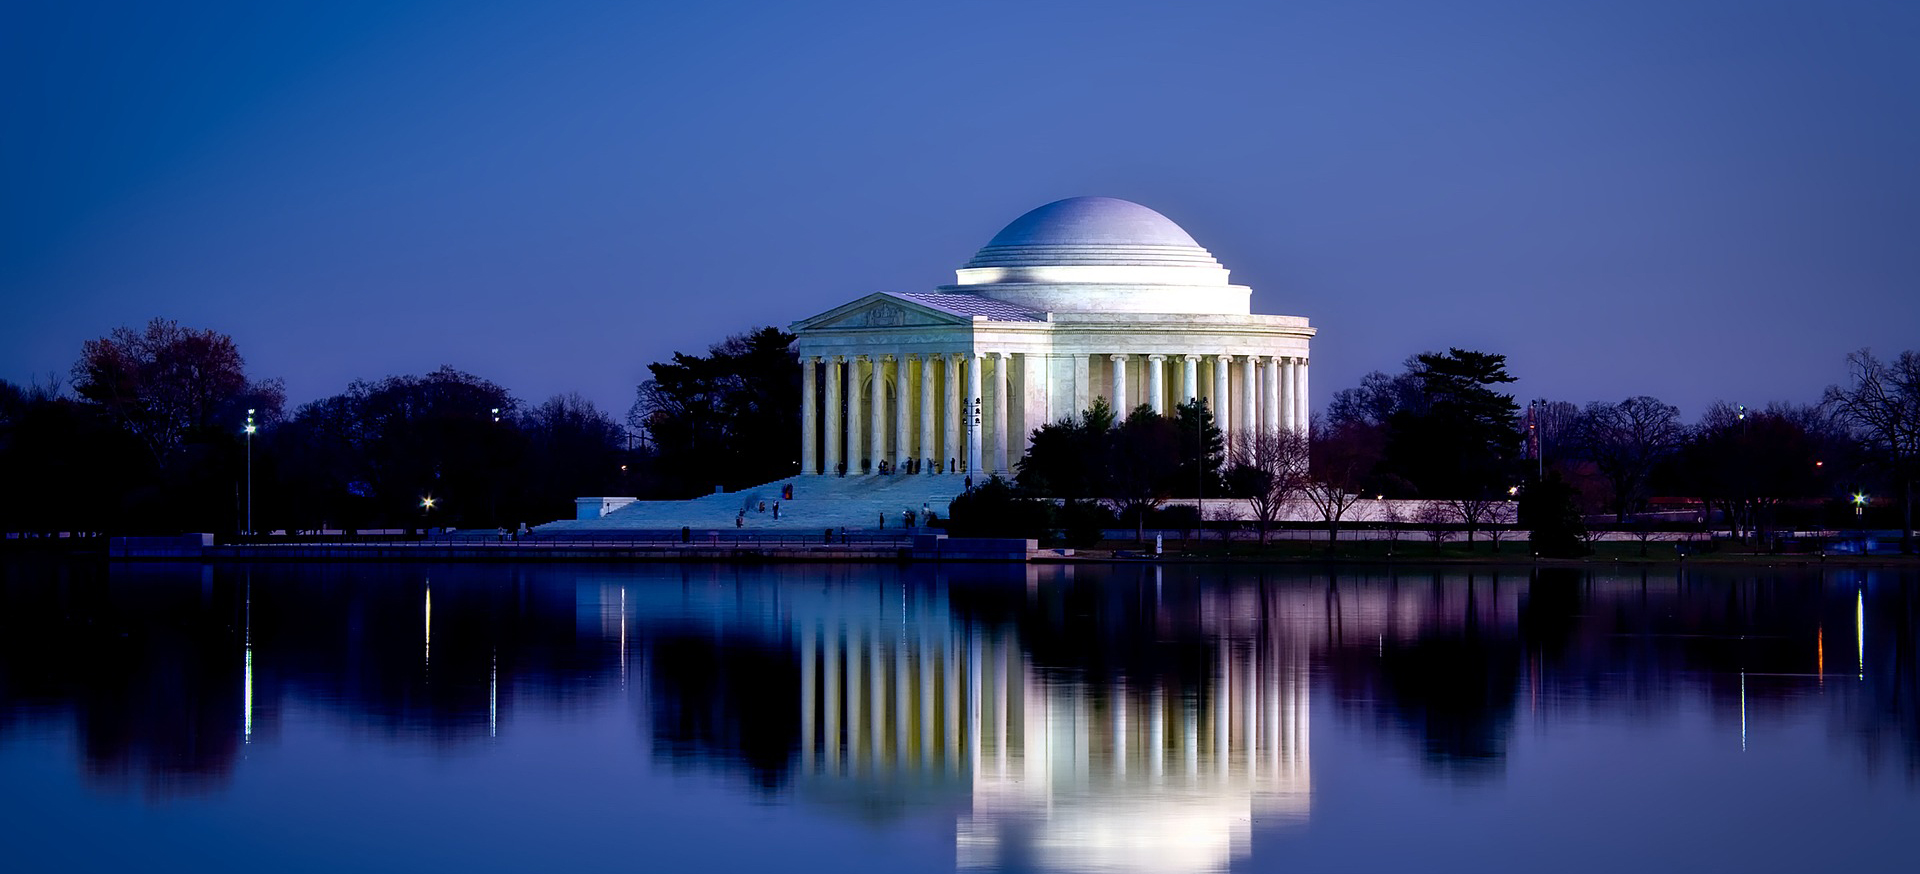 The Jefferson Memorial, Washington DC | Breast Cancer Car Donations